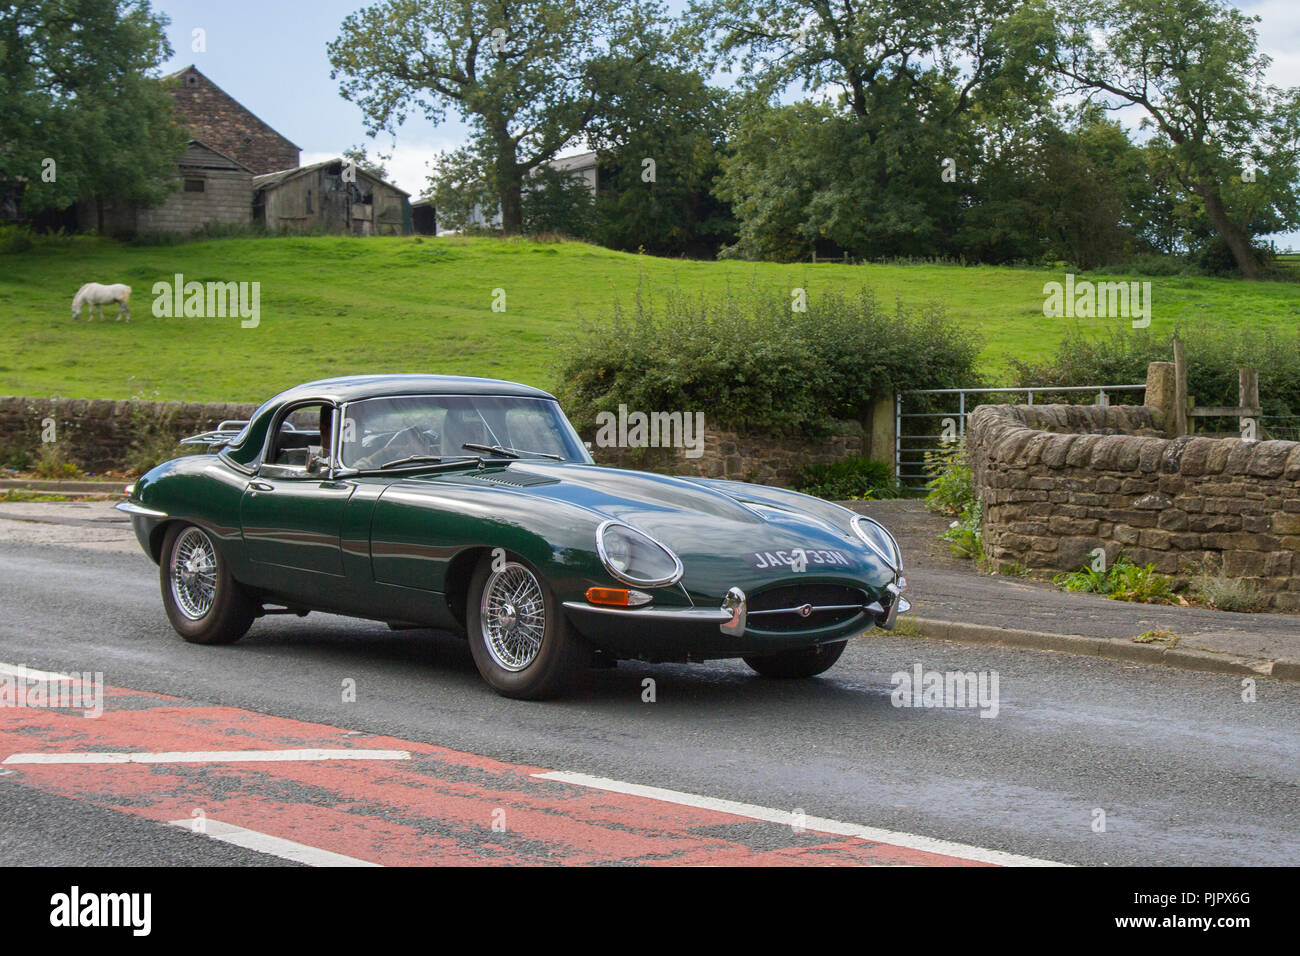 JAG733N GREEN 1988  Jaguar Xj-S AutoClassic, vintage, veteran, cars of yesteryear, restored collectibles at Hoghton Tower Class Cars Rally, UK - Stock Image